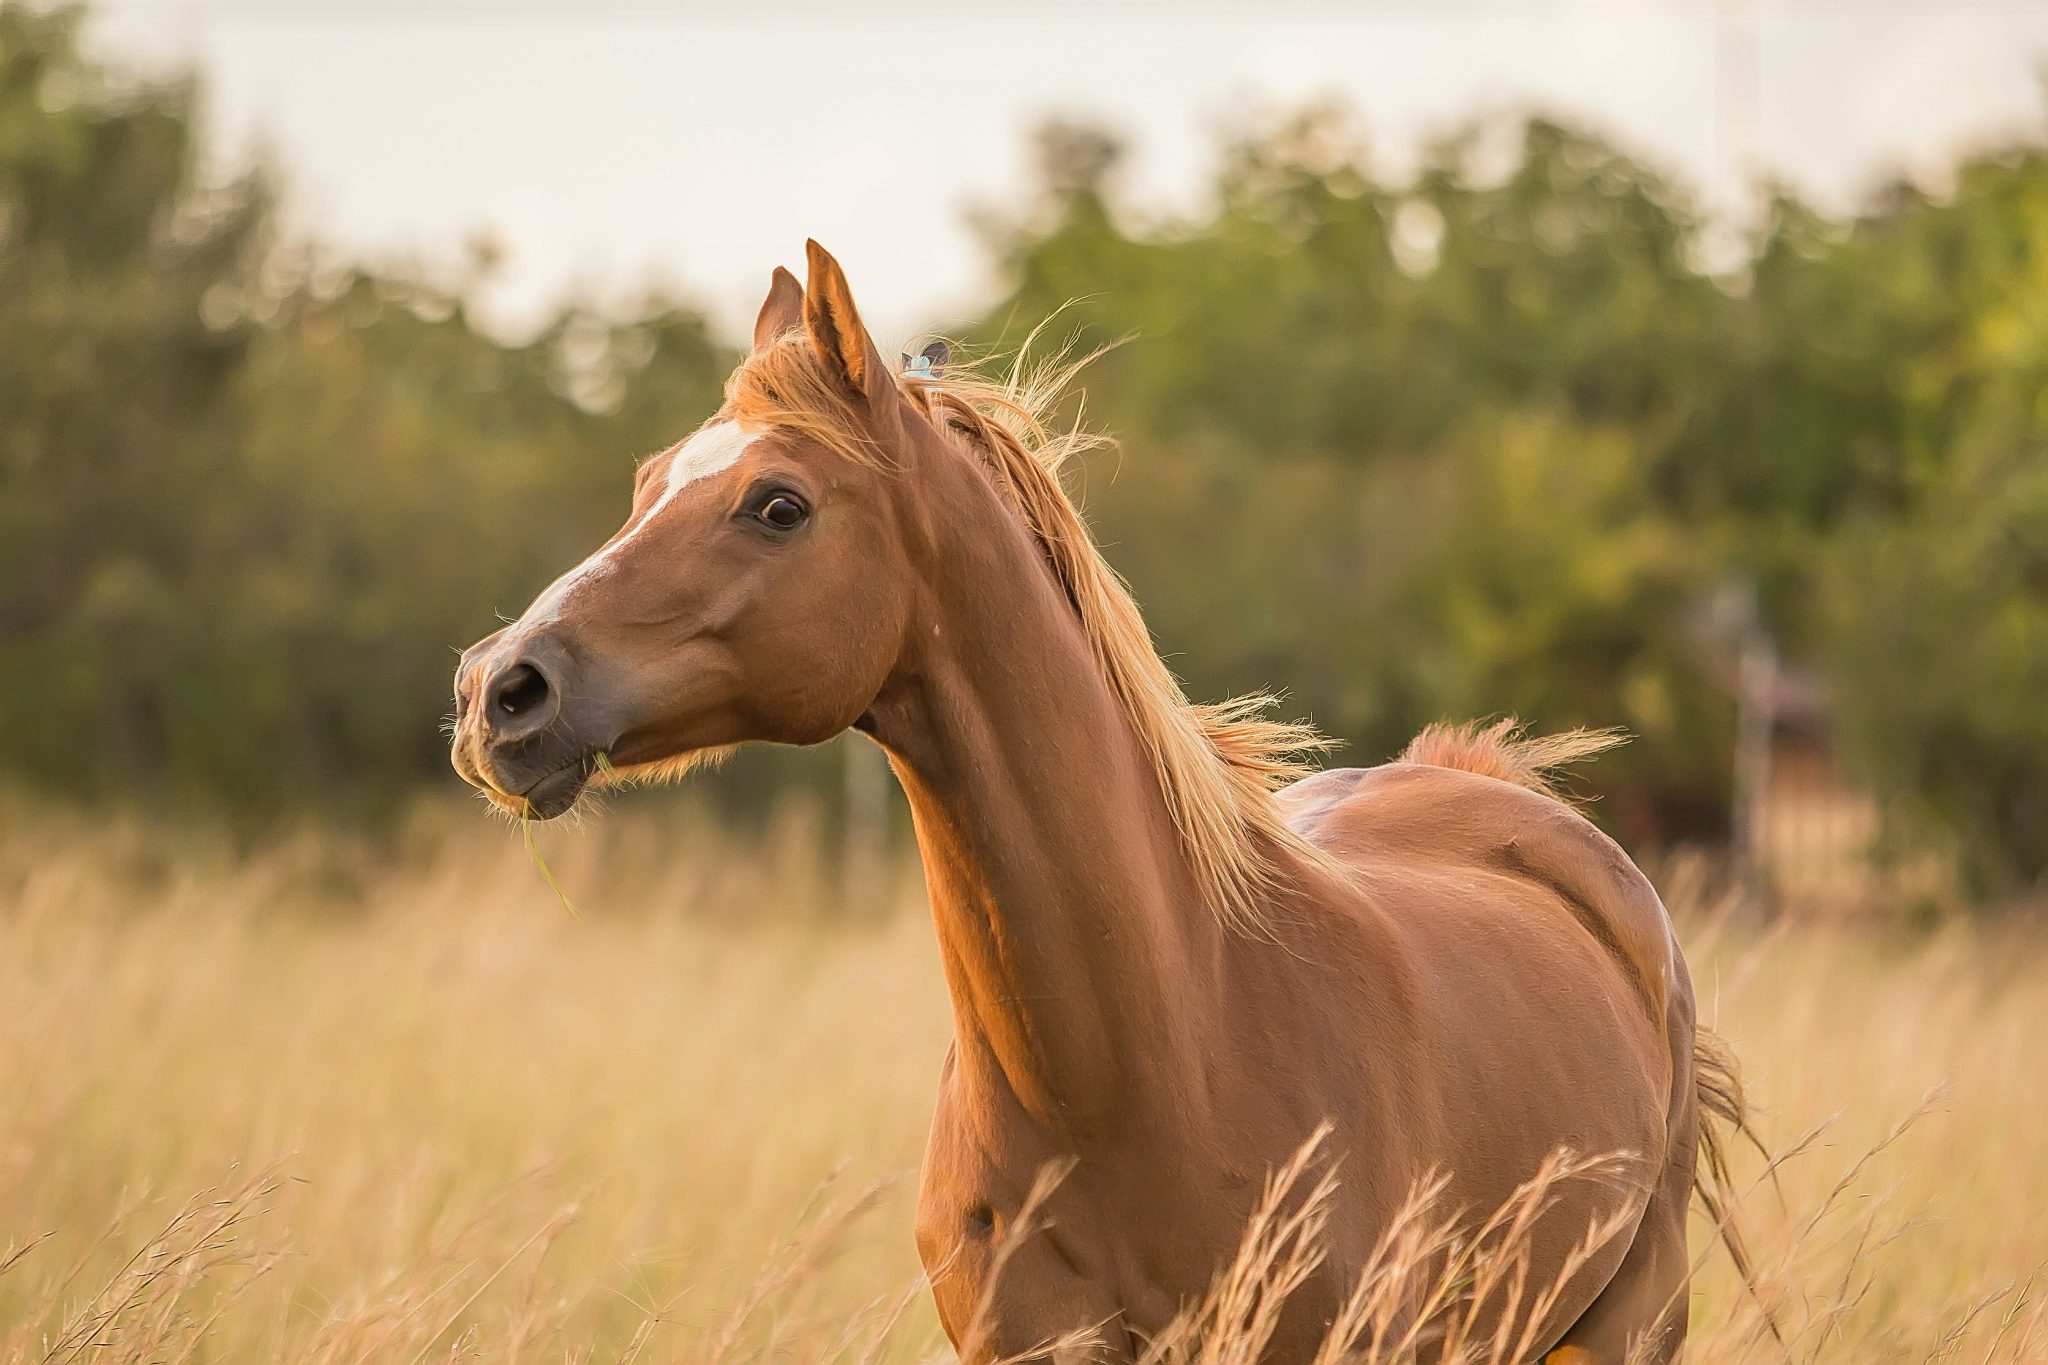 Horse portraits from photos like this beautiful artwork are the perfect gift for your favorite equestrian enthusiast.